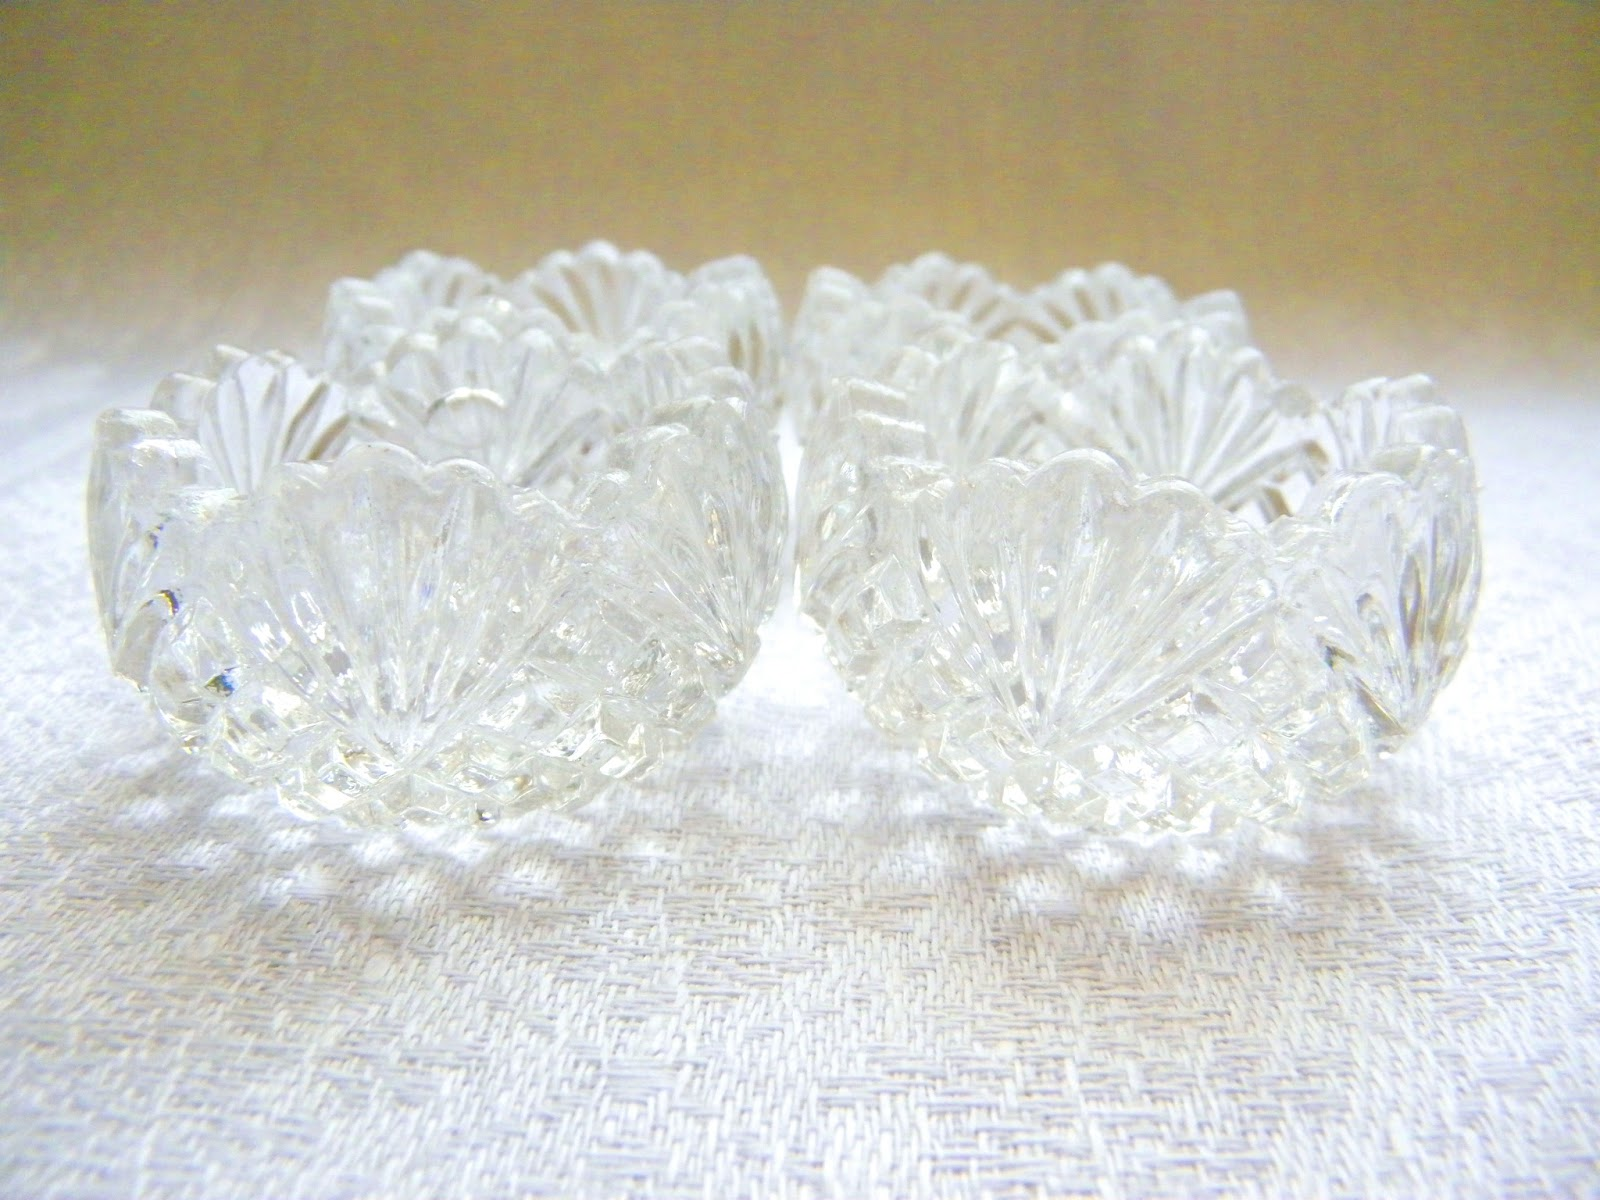 Beautiful vintage salt cellars set of 4 - These Are Inexpensive Depression Glass Cellars That Are Easily Found At Antique Stores And Online Auction Sites I Love Their Simple Faceted Design